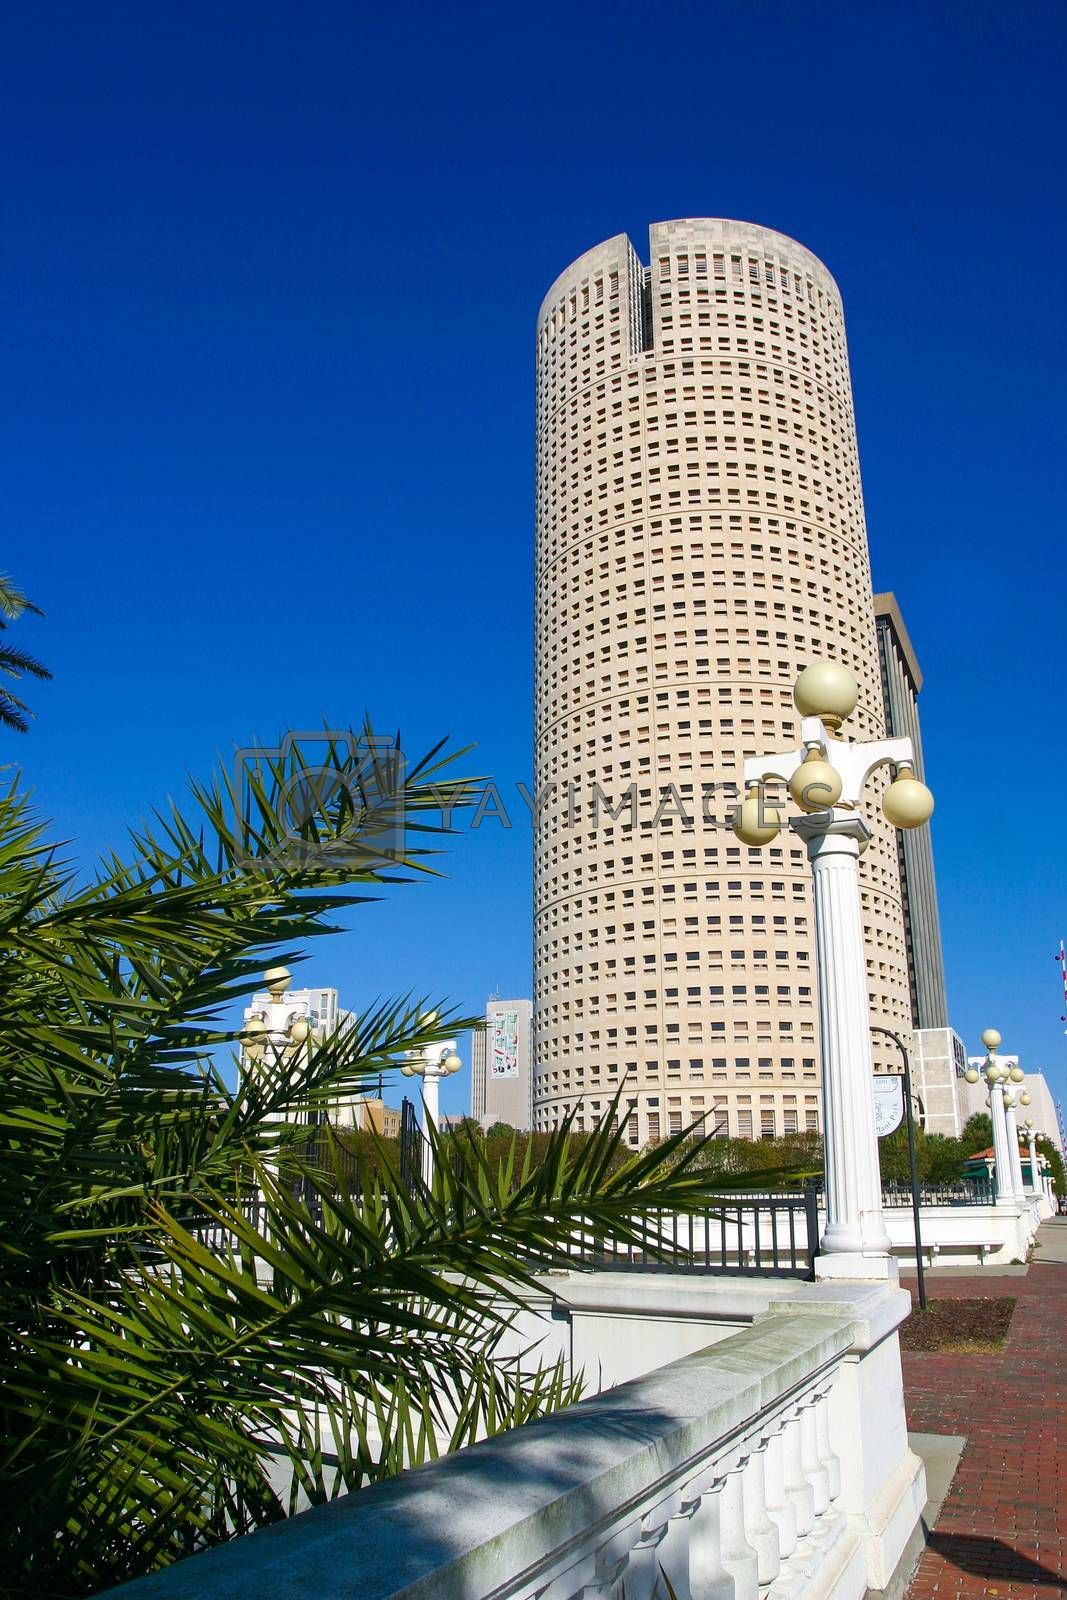 TAMPA, FLORIDA, USA - DECEMBER 06, 2003: Rivergate Tower building in the Central Business District on a sunny day.